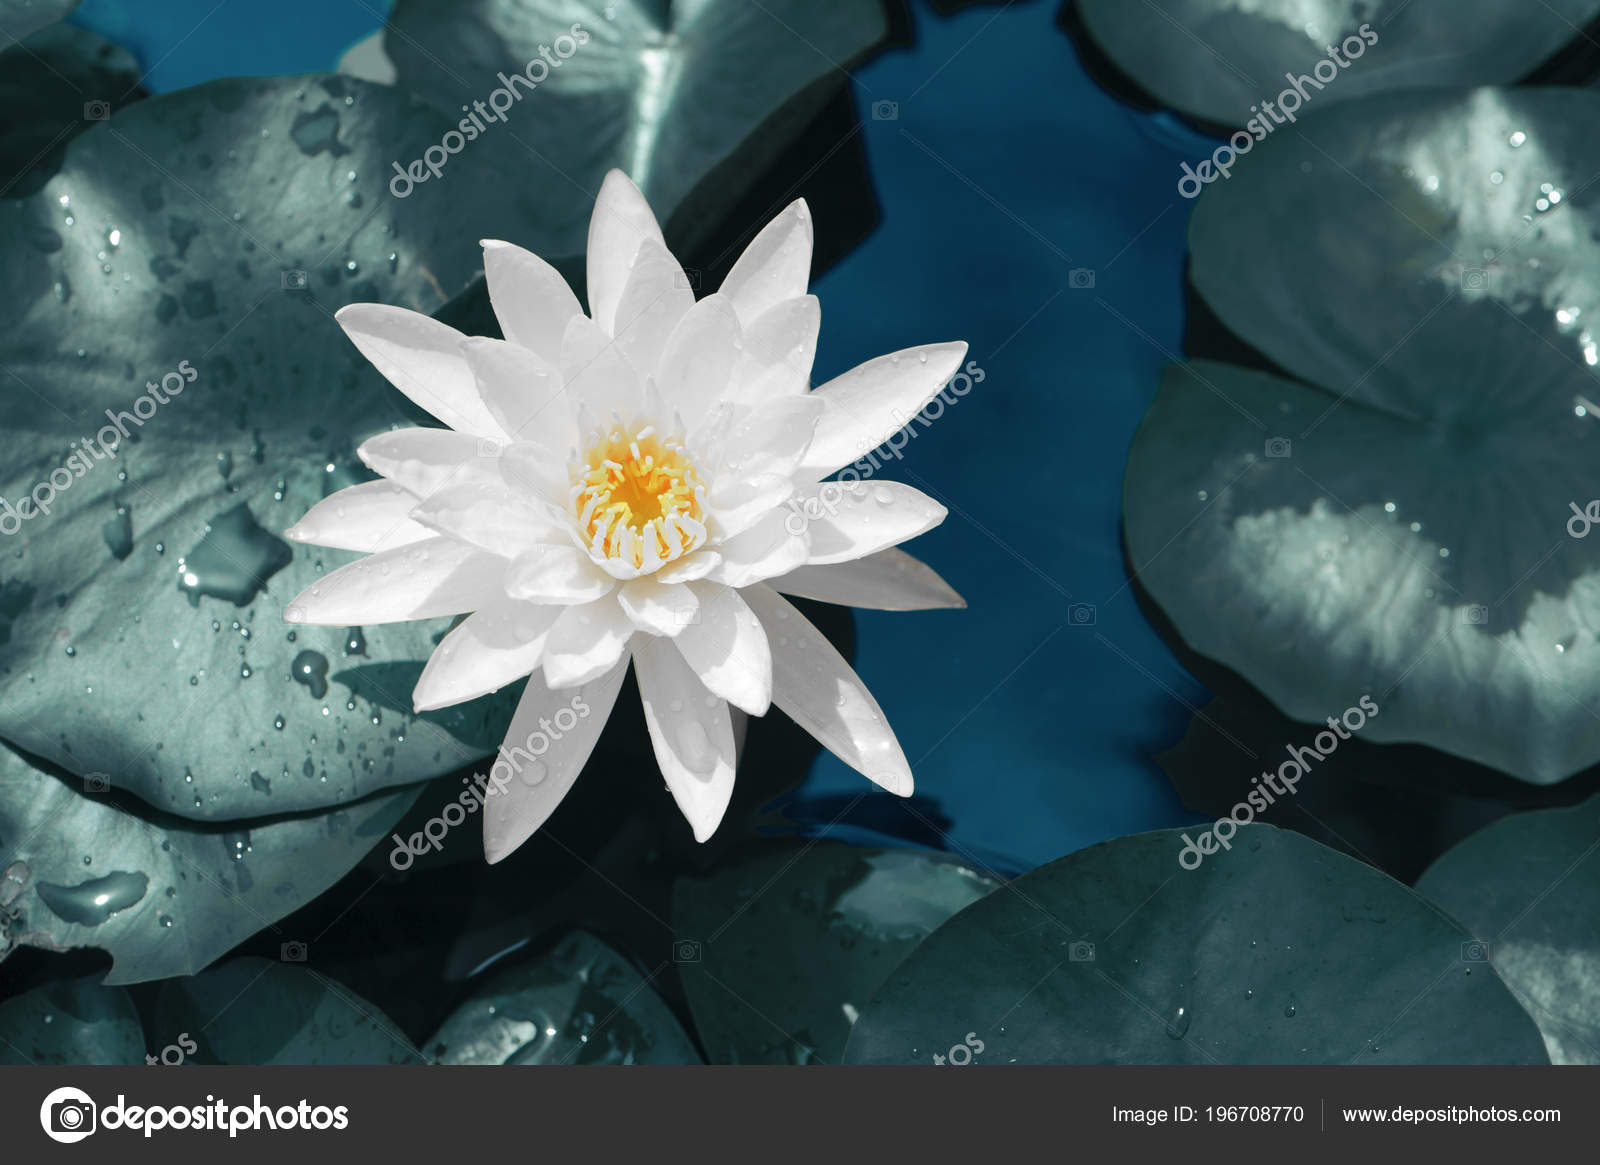 Free picture: dew, raindrop, flower, leaf, white lotus ...